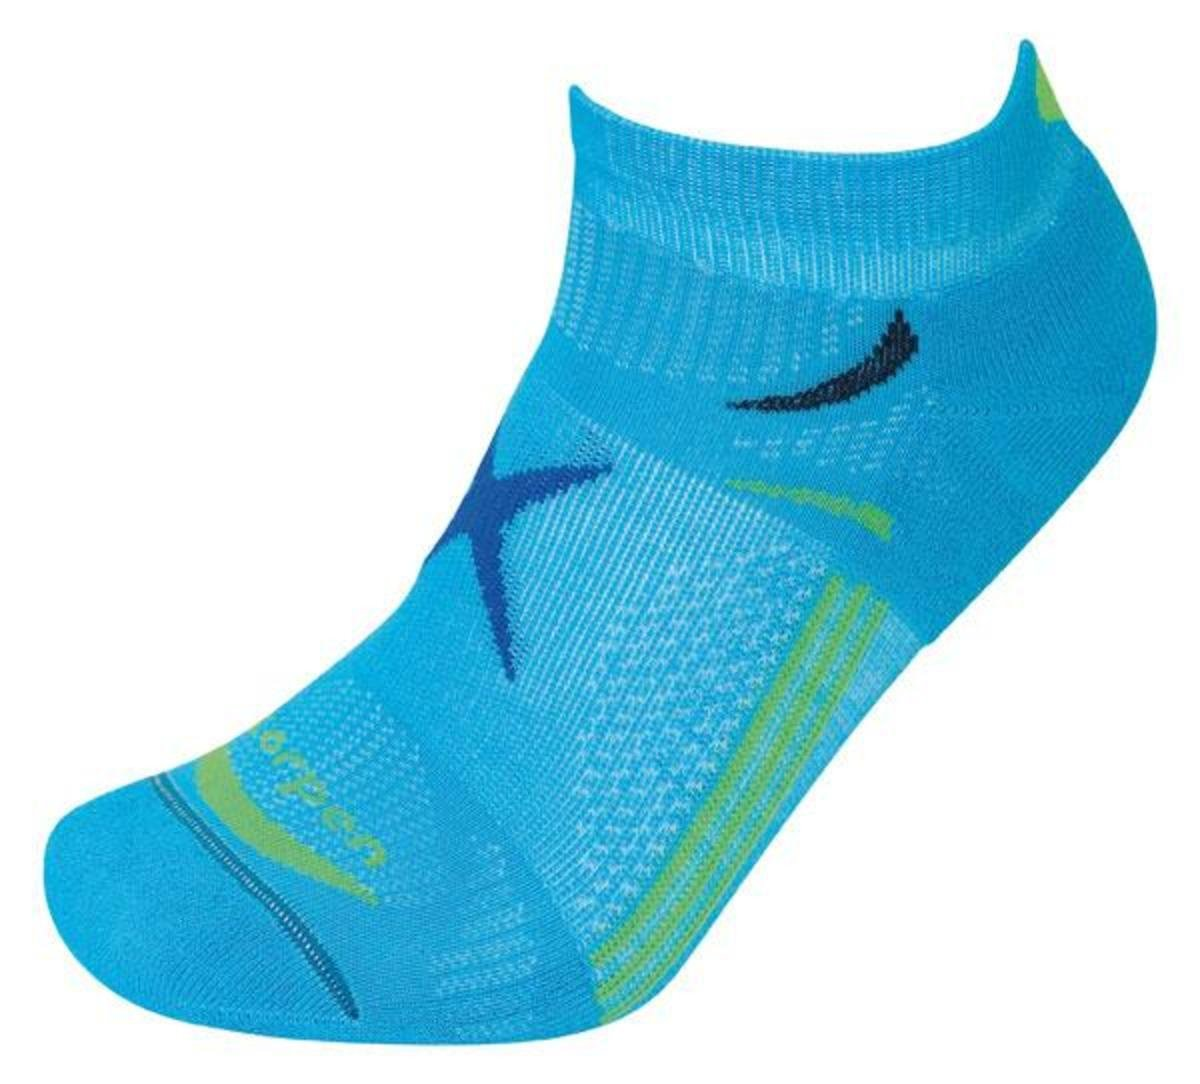 西班牙專業運動襪 - T3 Light Mini, Sock Cadet Blue L